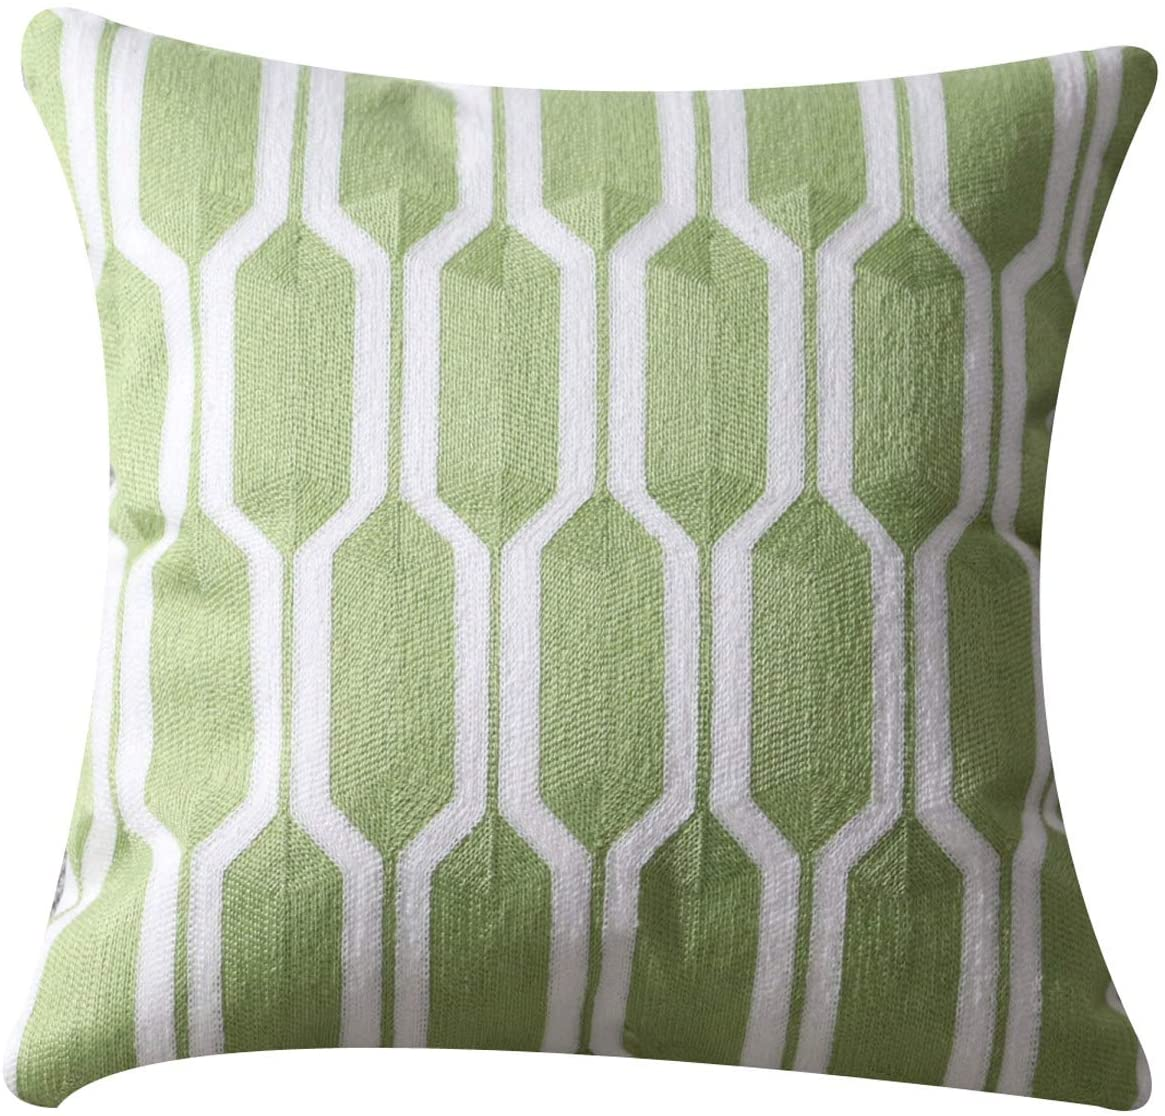 UnionKK Home Decoration 100% Cotton Canvas Sofa Decorative Pillow Covers Embroidery Geometric Throw Pillowcase Cushion Cover Stereoscopic Embroidered Pillow Covers Sofa Bed 18 x 18 inches (Green)